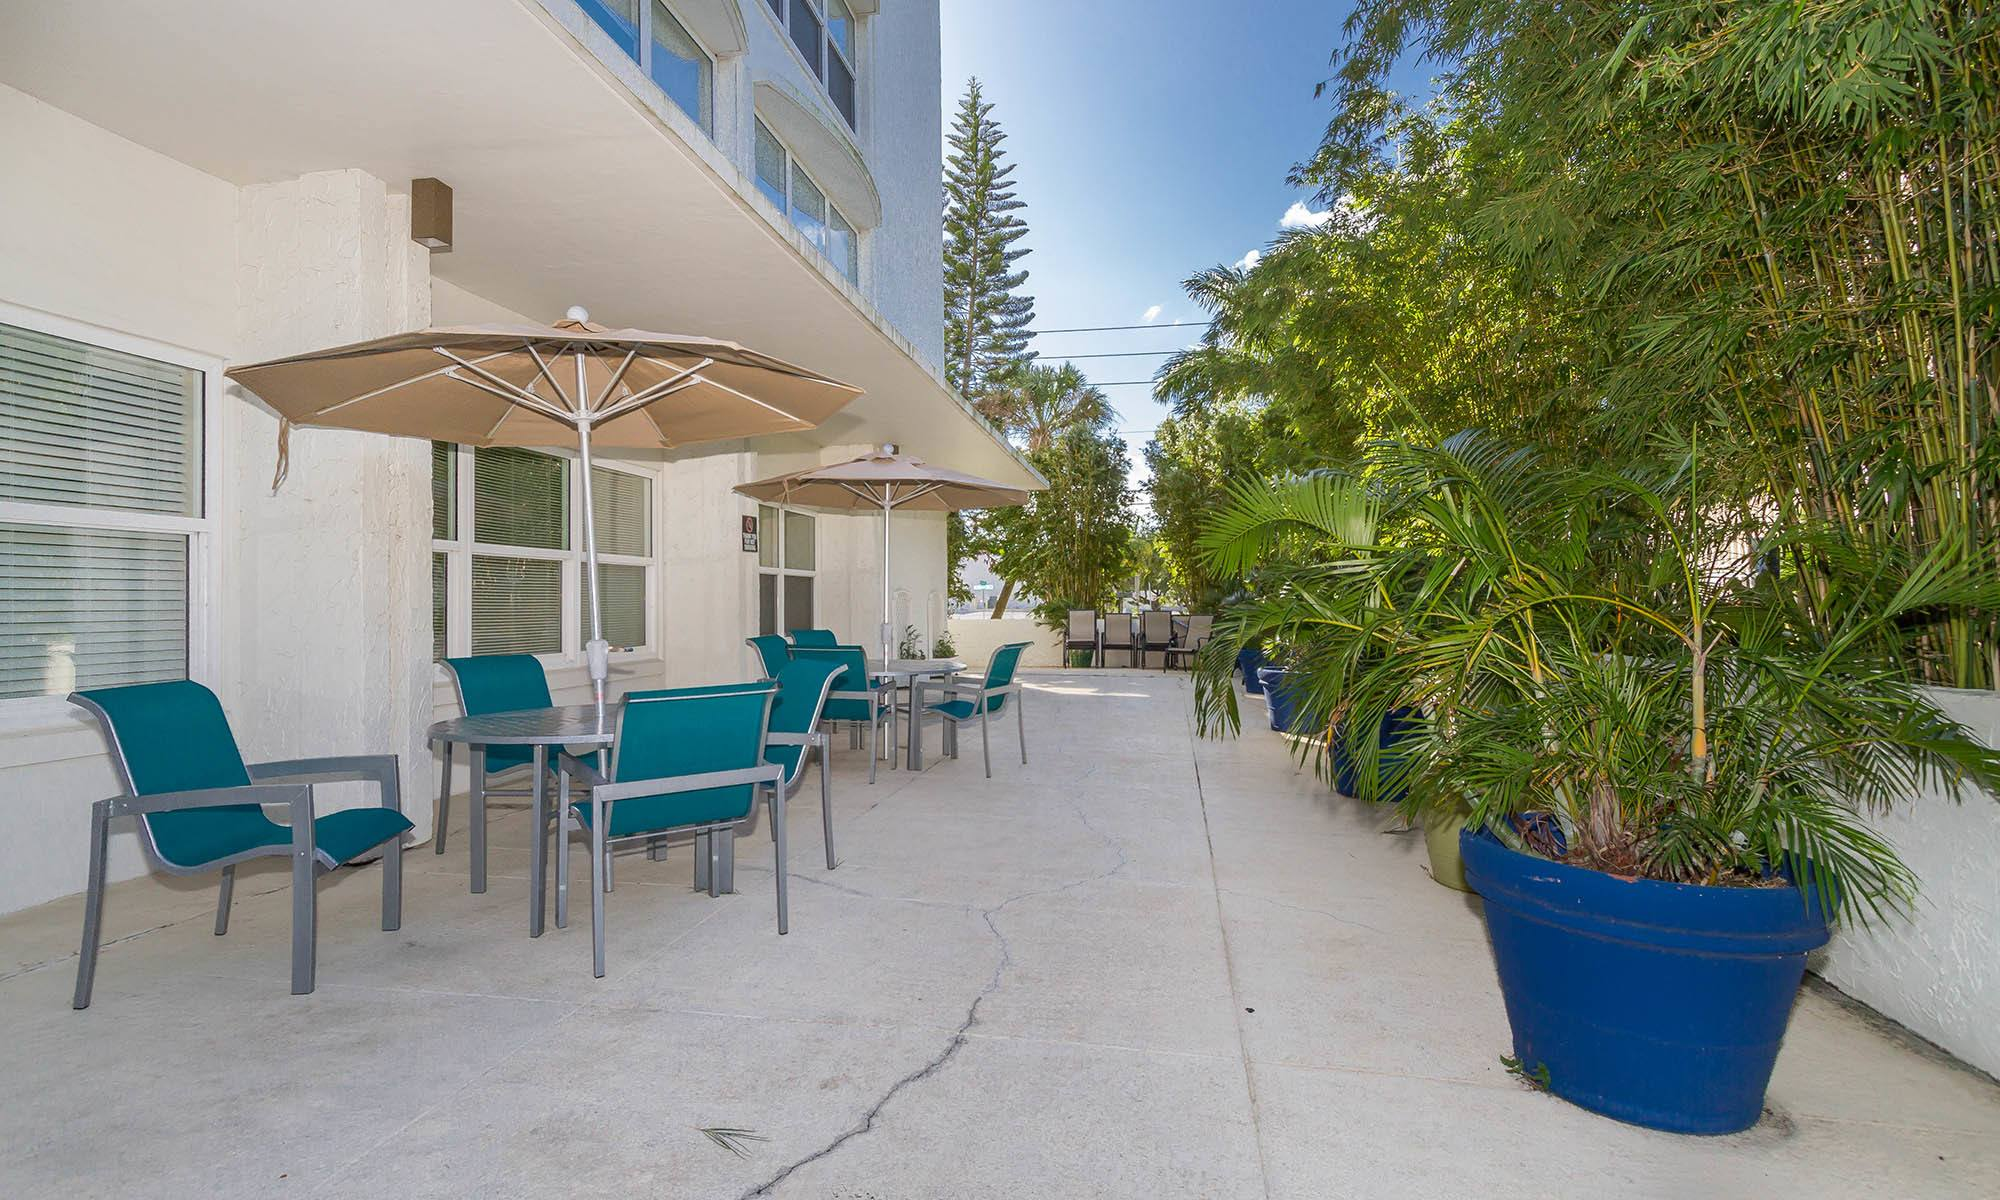 Welcome to Bay Pointe Tower in South Pasadena, FL